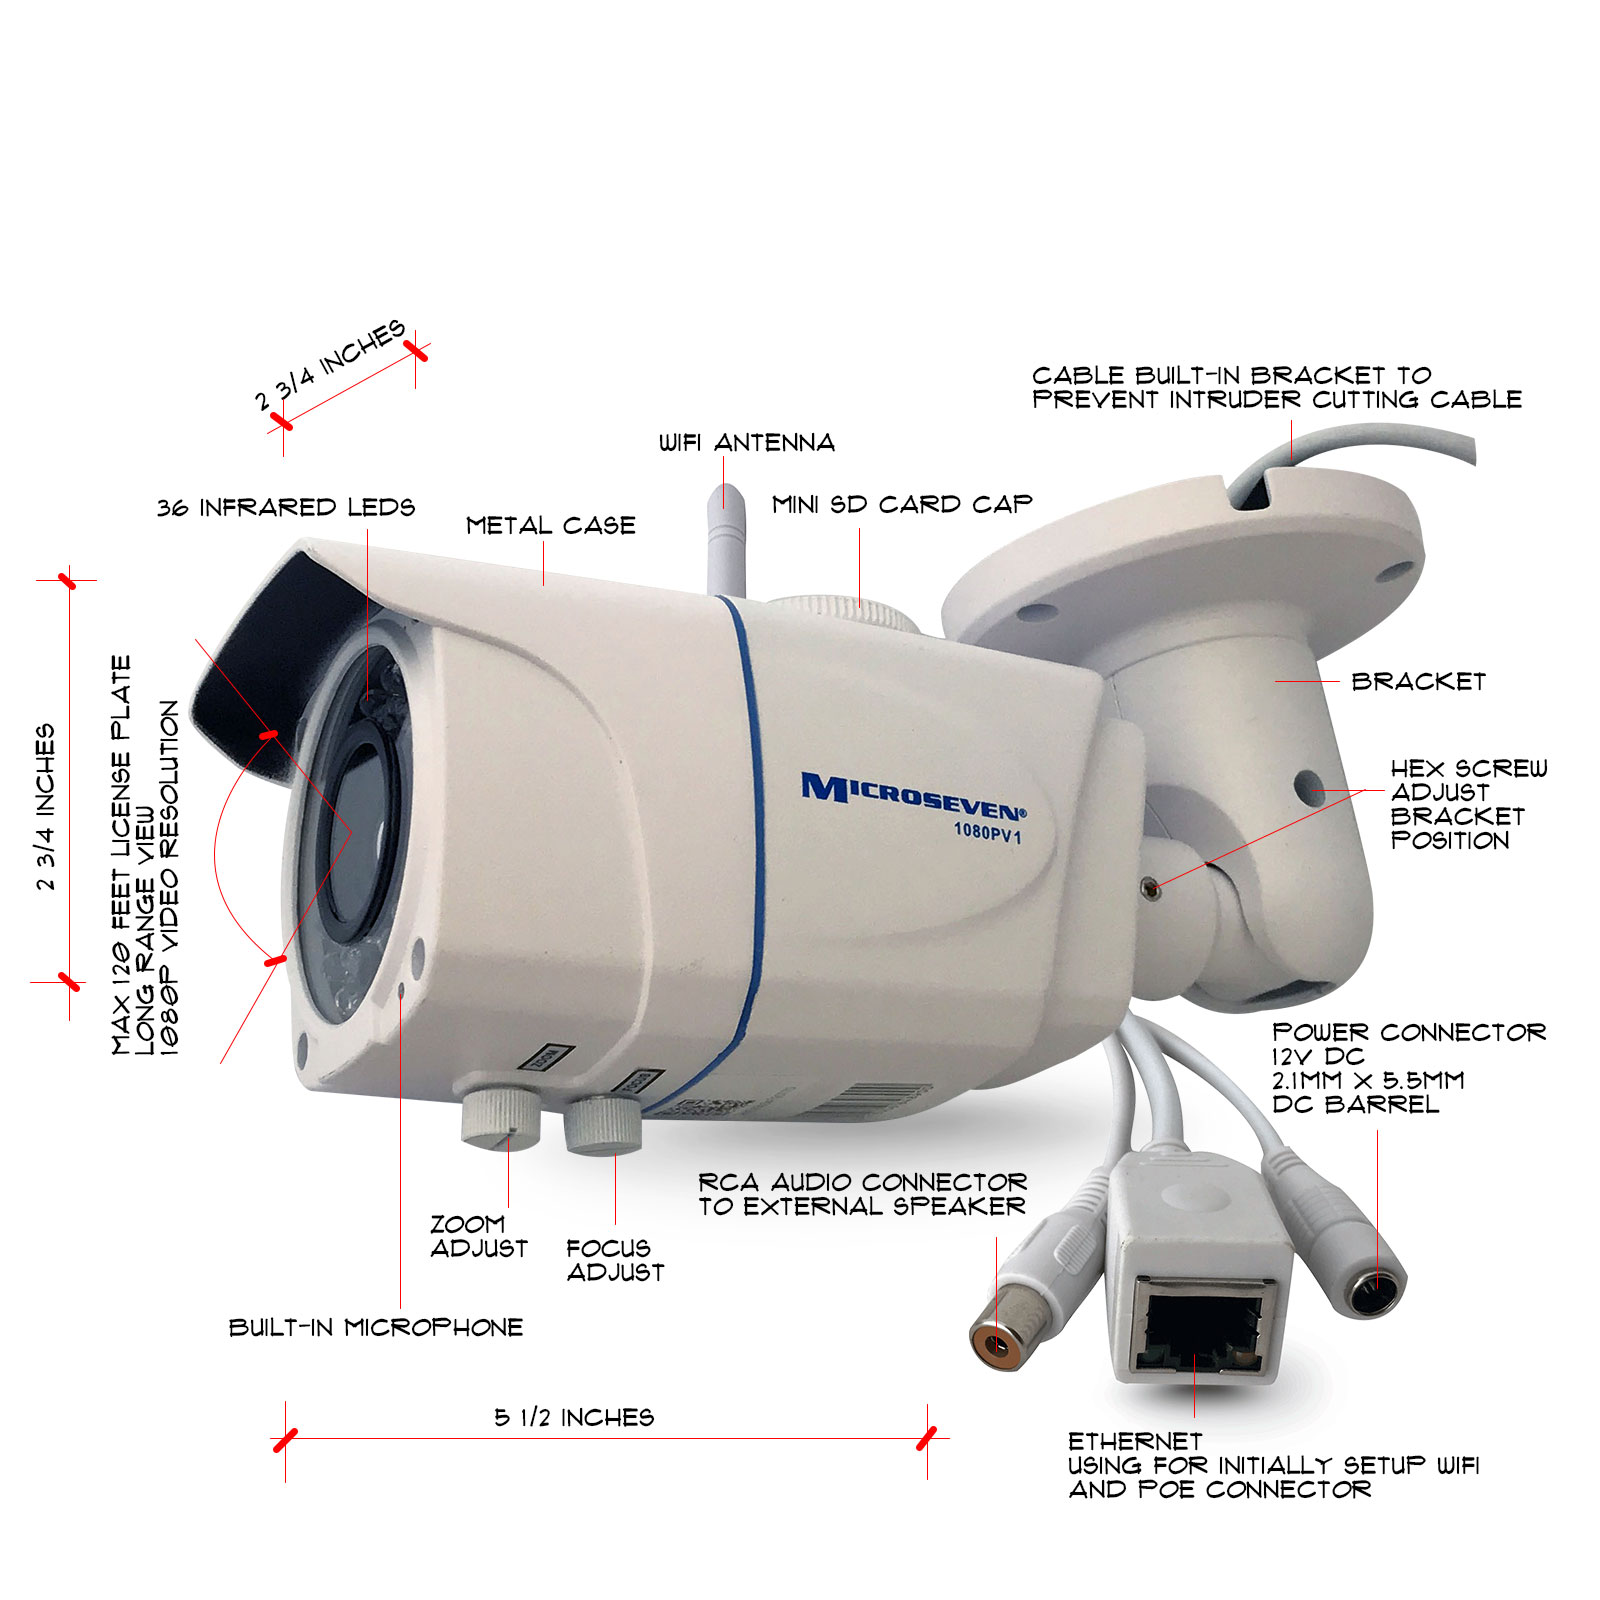 "M7B77-WPSV1 HD 1080P NEWEST SONY 1/2.8"" Chipset CMOS 3MP 6-22mm Varifocal Lens Plug and Play ONVIF Wireless Outdoor Security IP Camera 128GB SD Slot,Build-in POE, Built-in Microphone, Day & Night, Free M7 Cloud+Free Live Streaming on microseven.tv (With Built-in POE)/Works with Alexa"